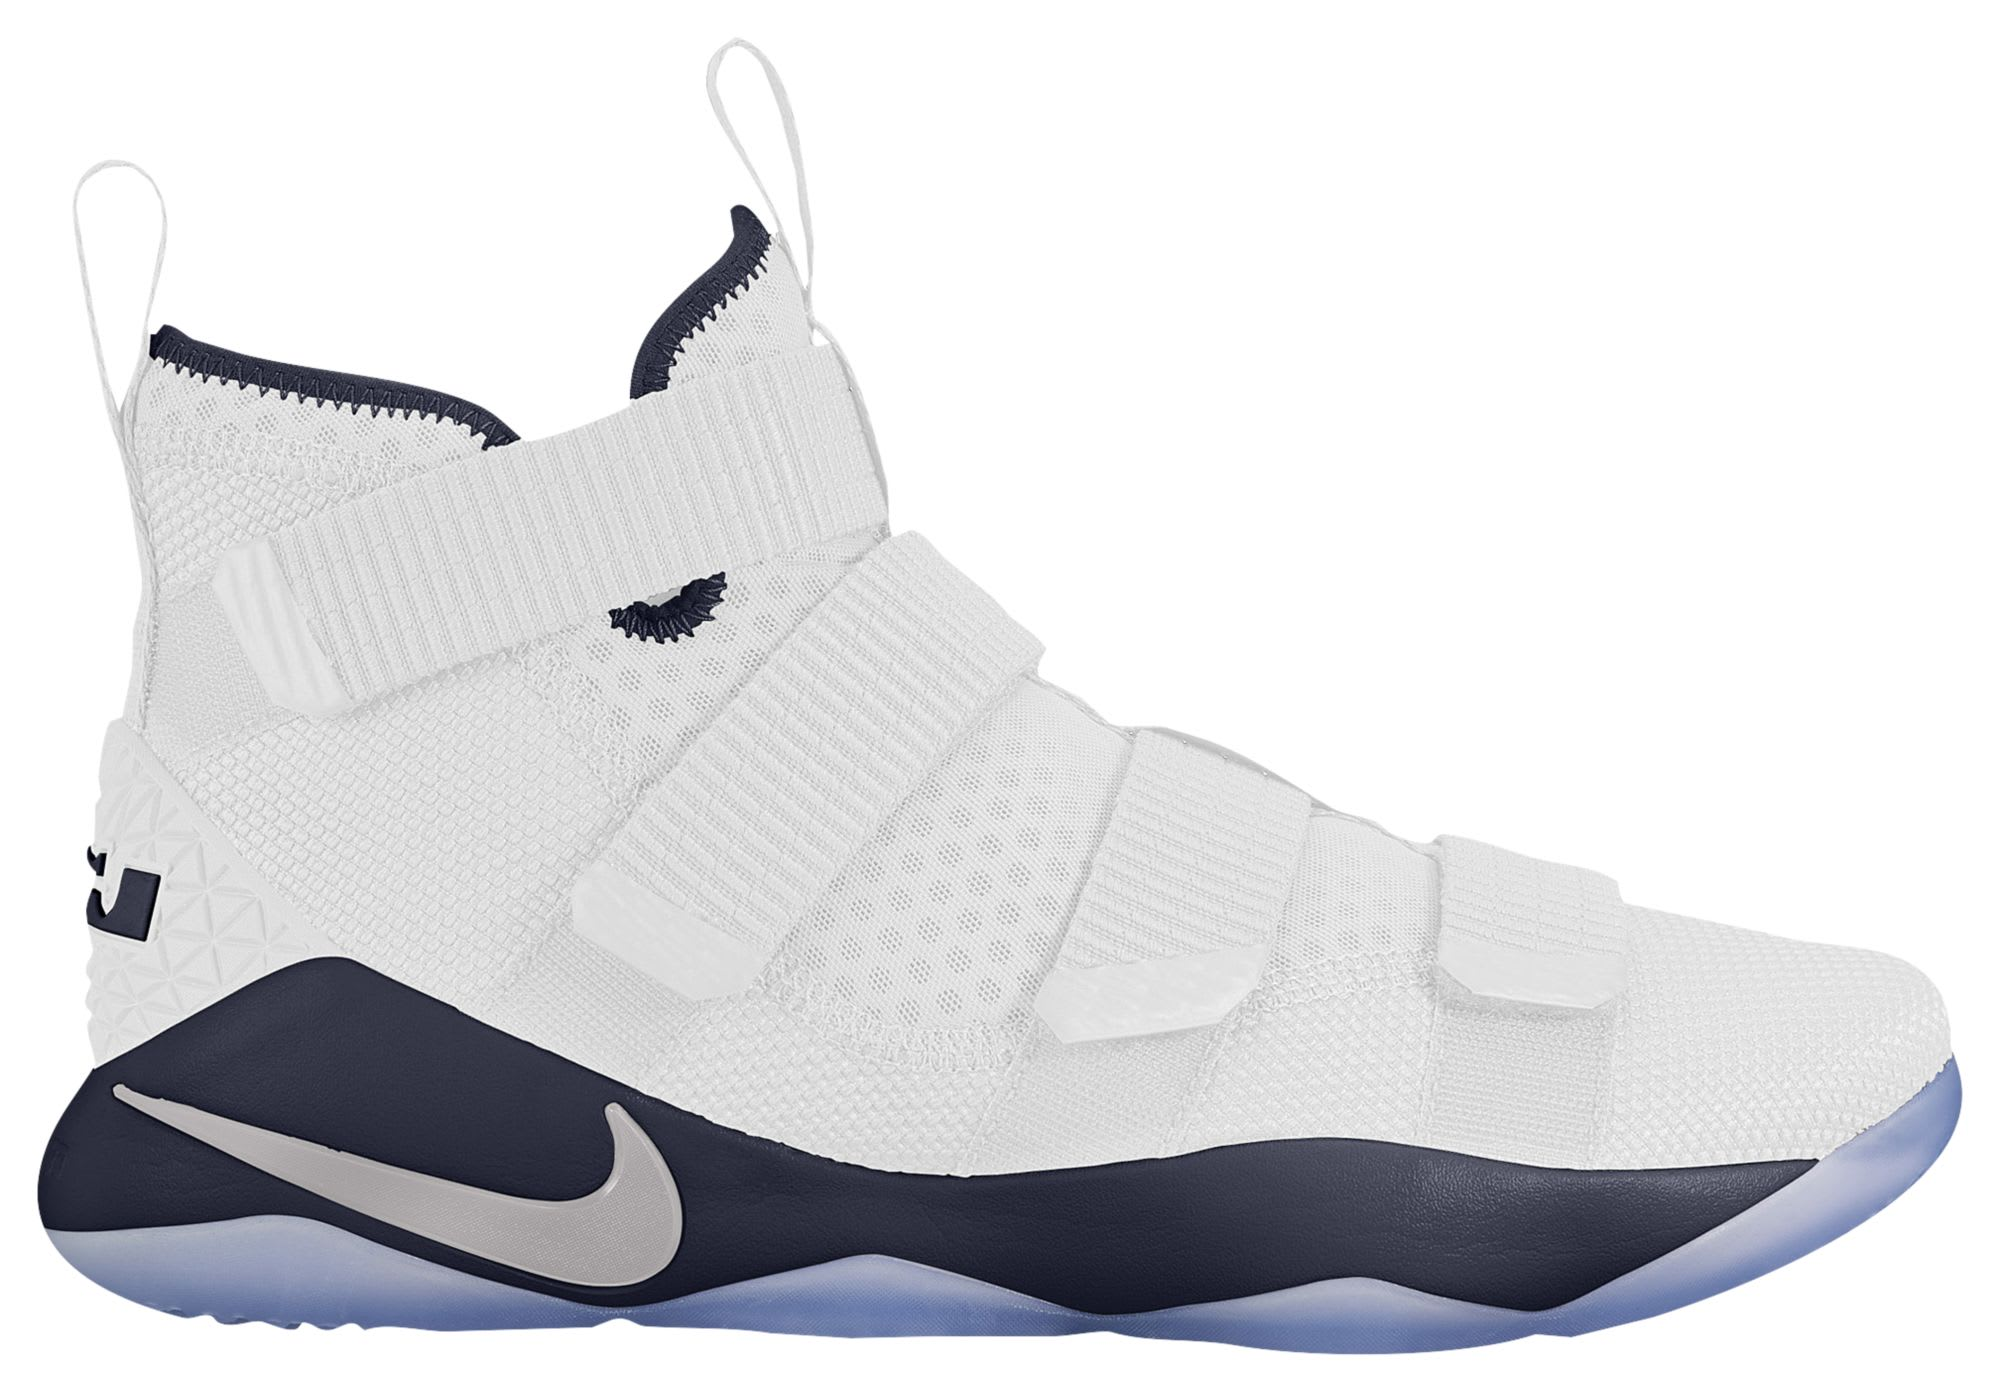 Nike LeBron Soldier 11 White Navy